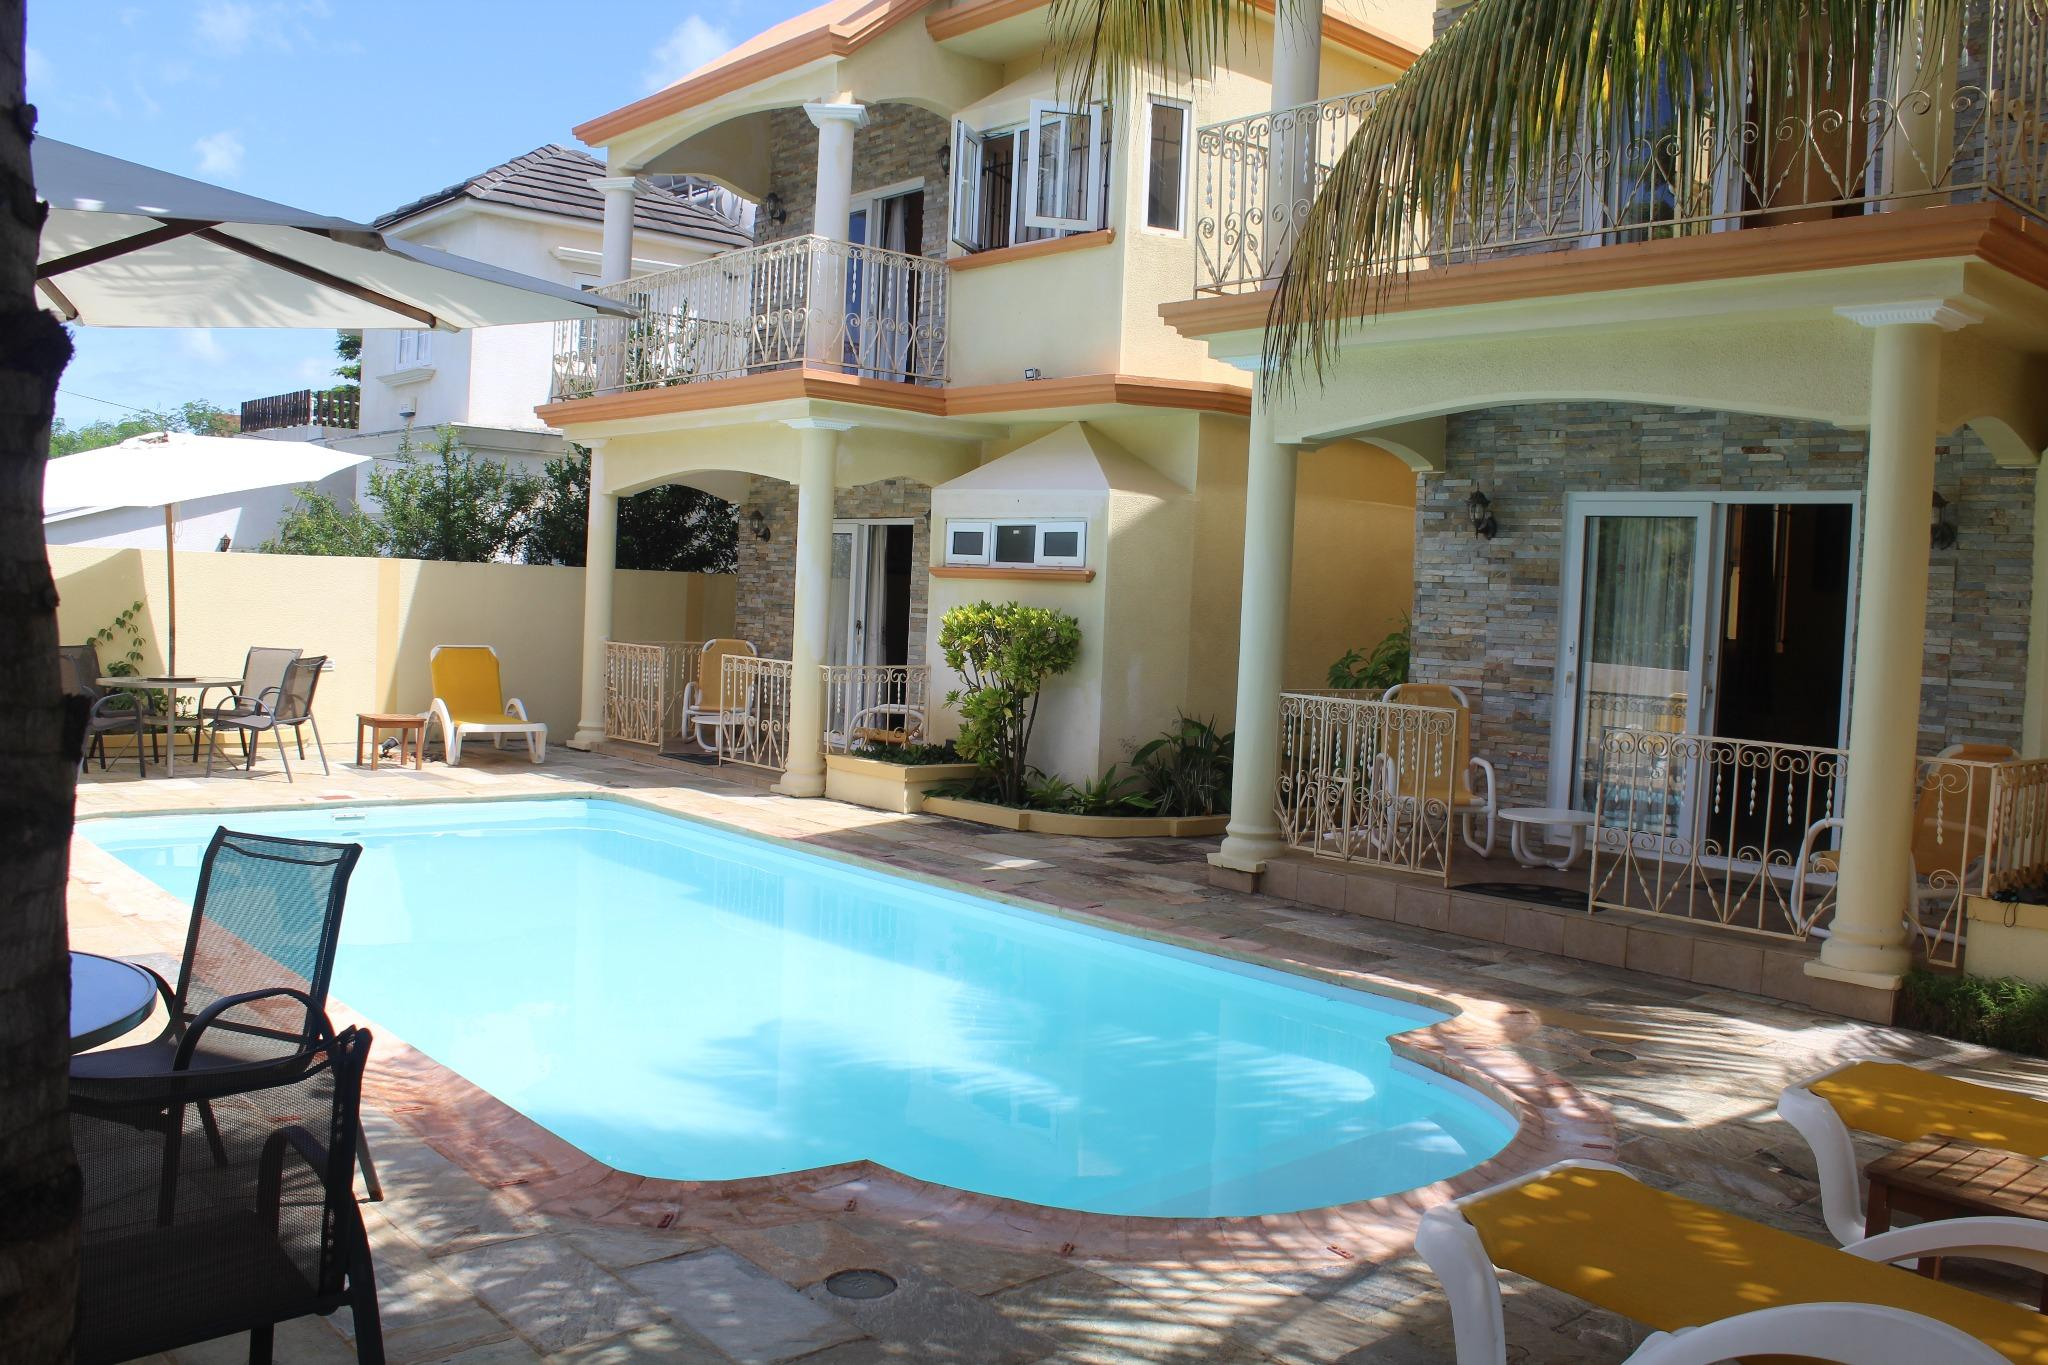 For sale – Residential complex of 3 bungalows and of 2 studios with a common swimming pool in Flic-en-Flac.